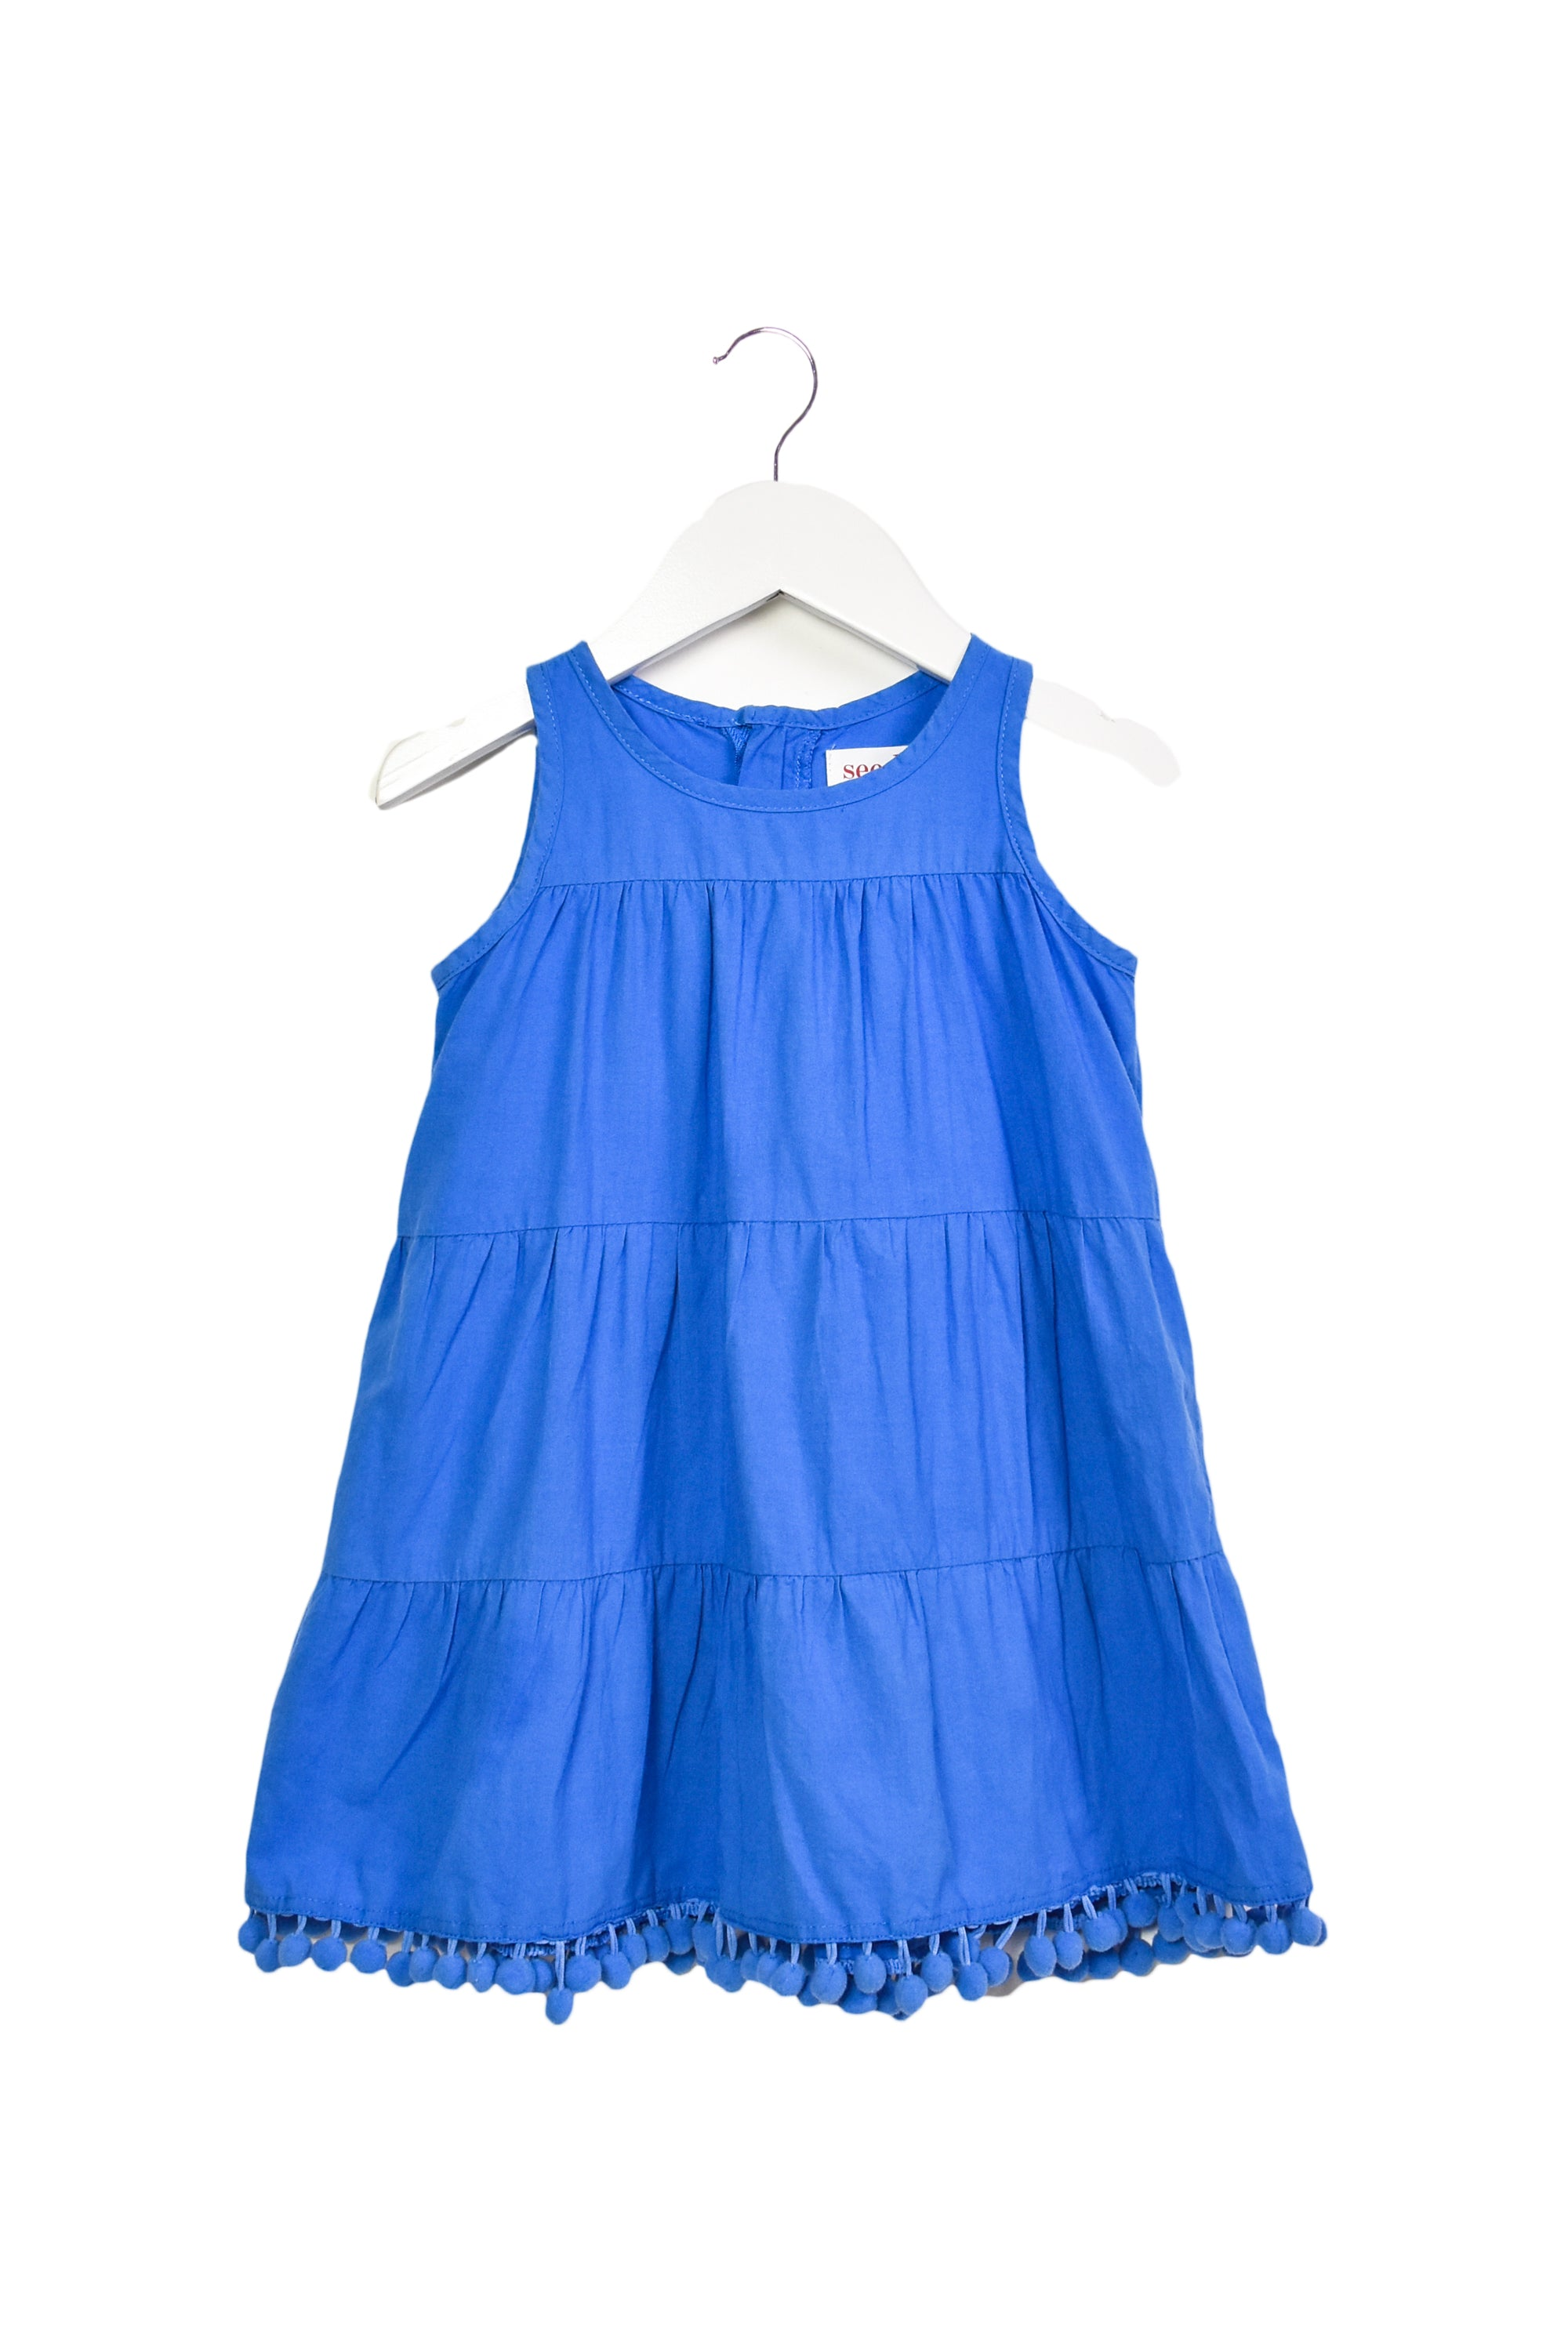 10014691 Seed Baby ~ Dress 1-2T at Retykle